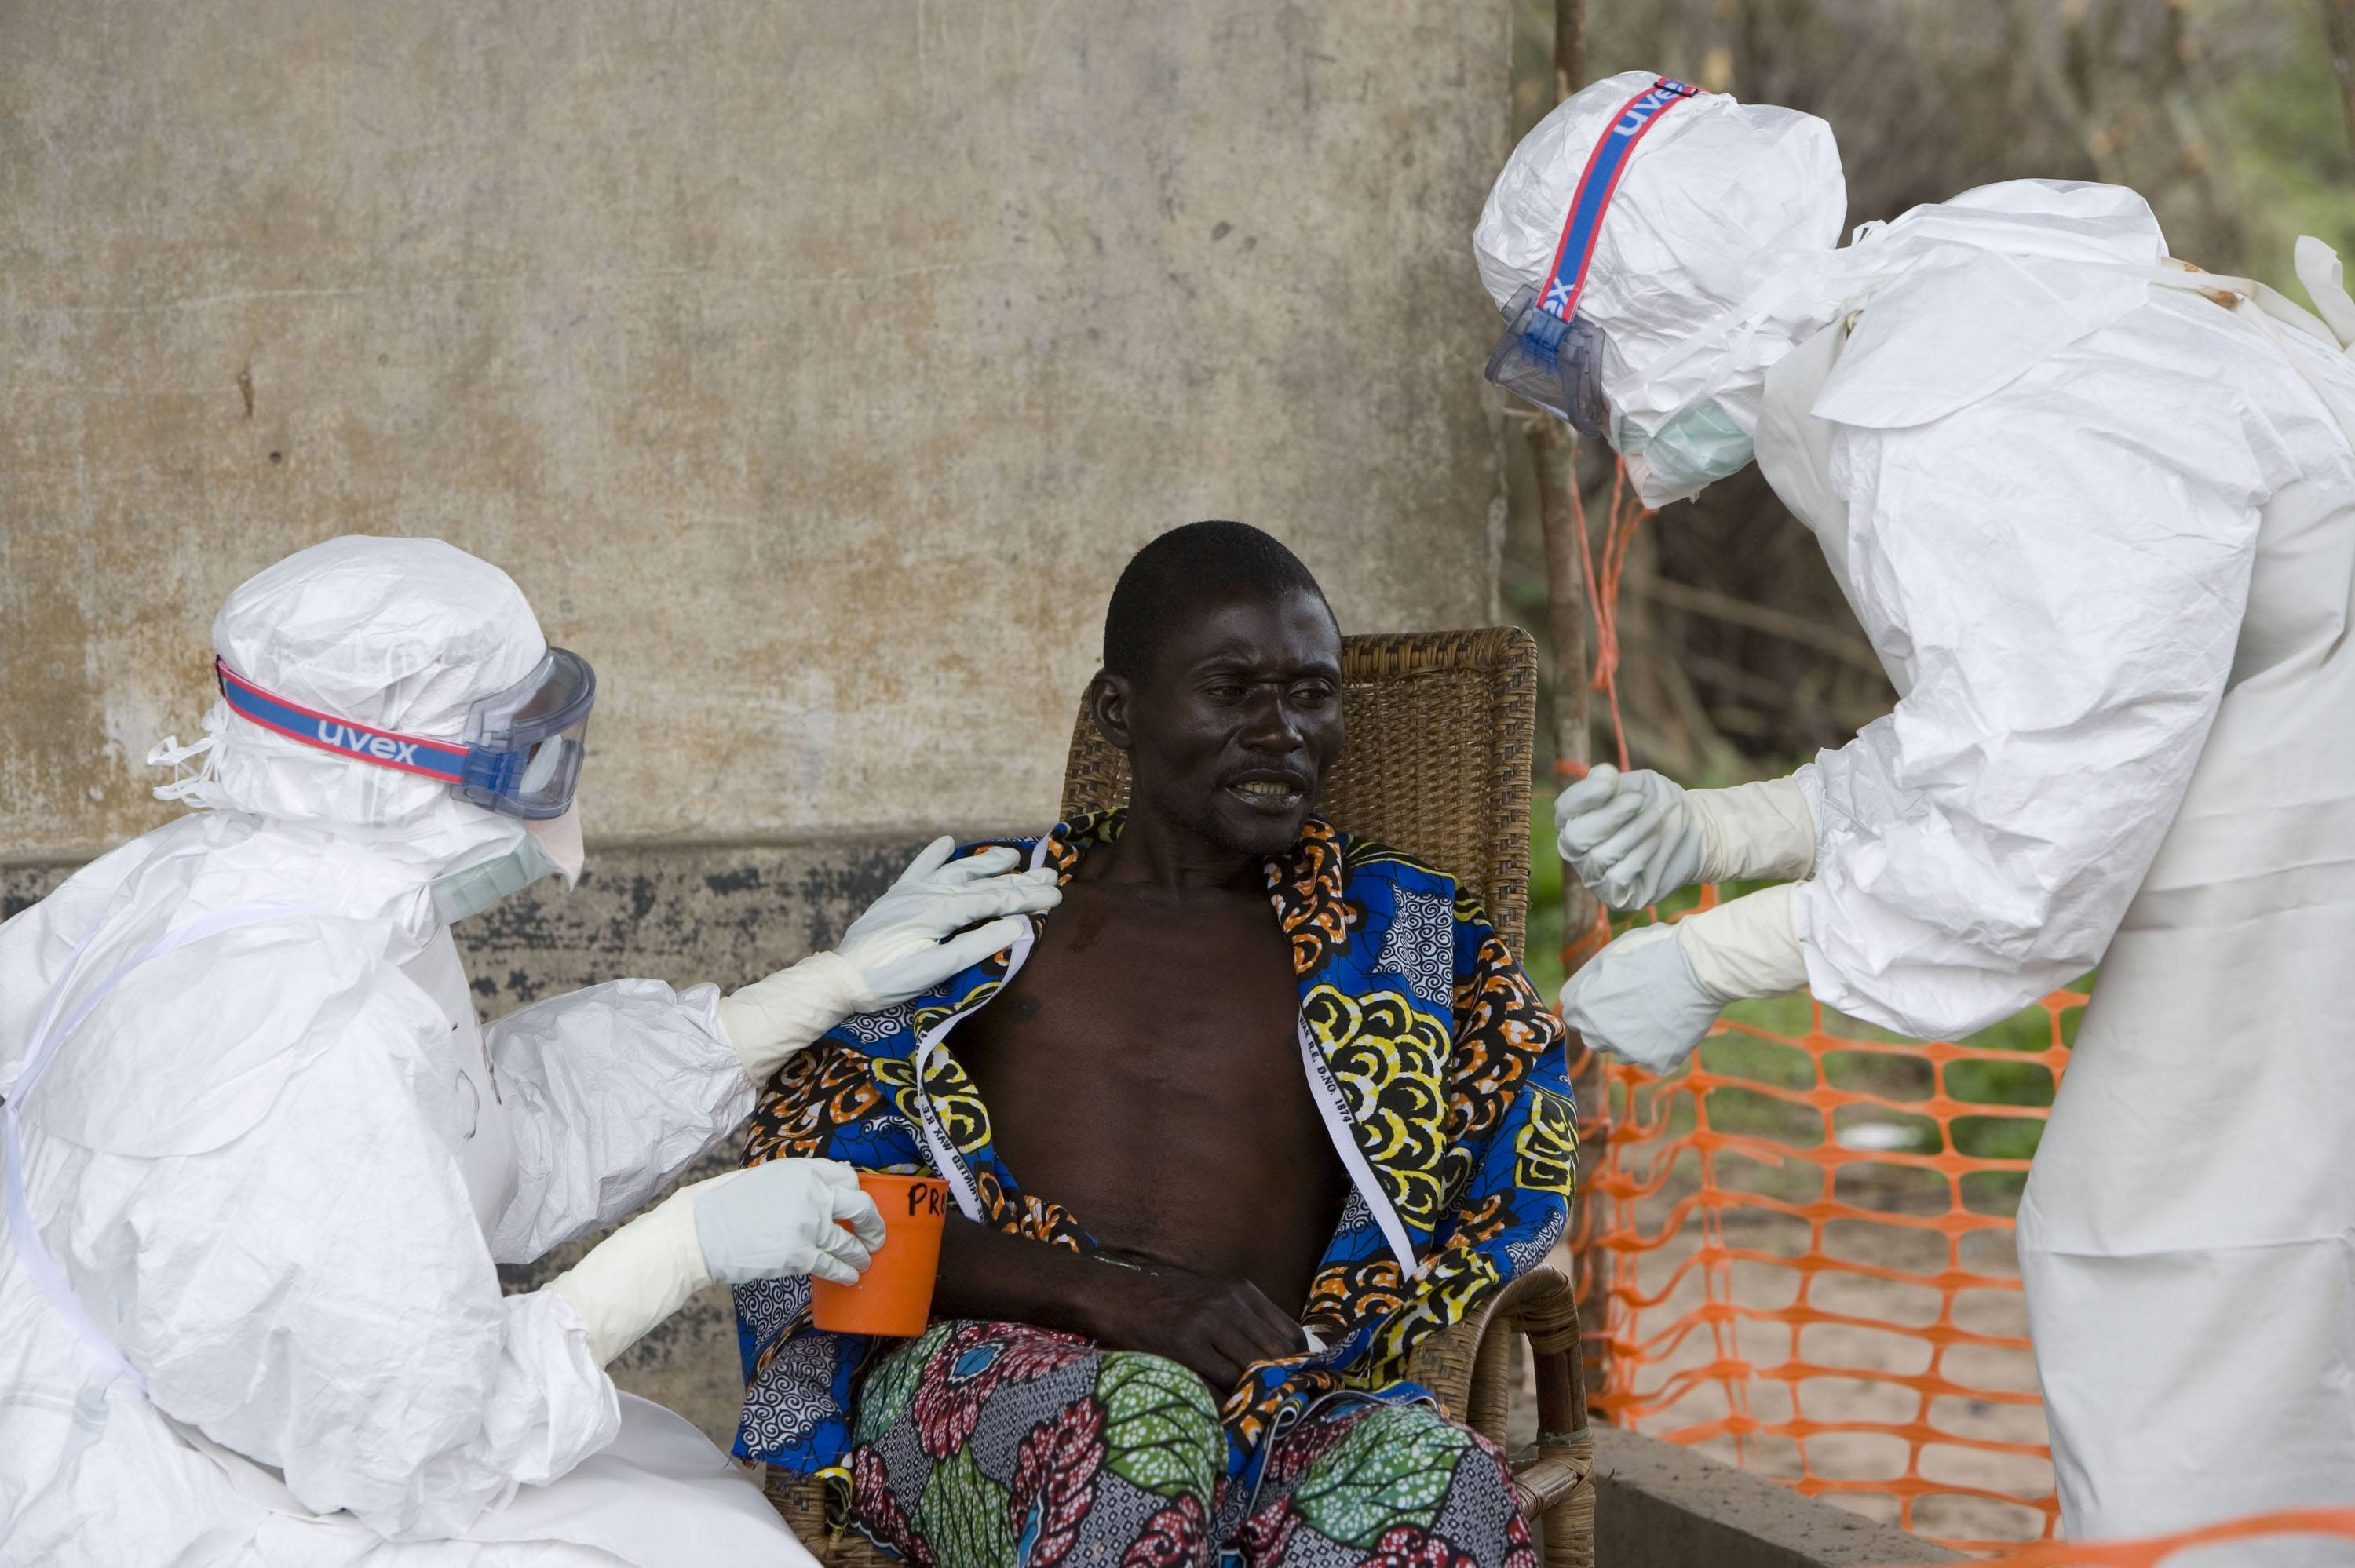 A 43 year old Congolese patient, center, who has been confirmed to have Ebola hemorrhagic fever, following laboratory tests, is comforted by Doctors without Borders personnel.